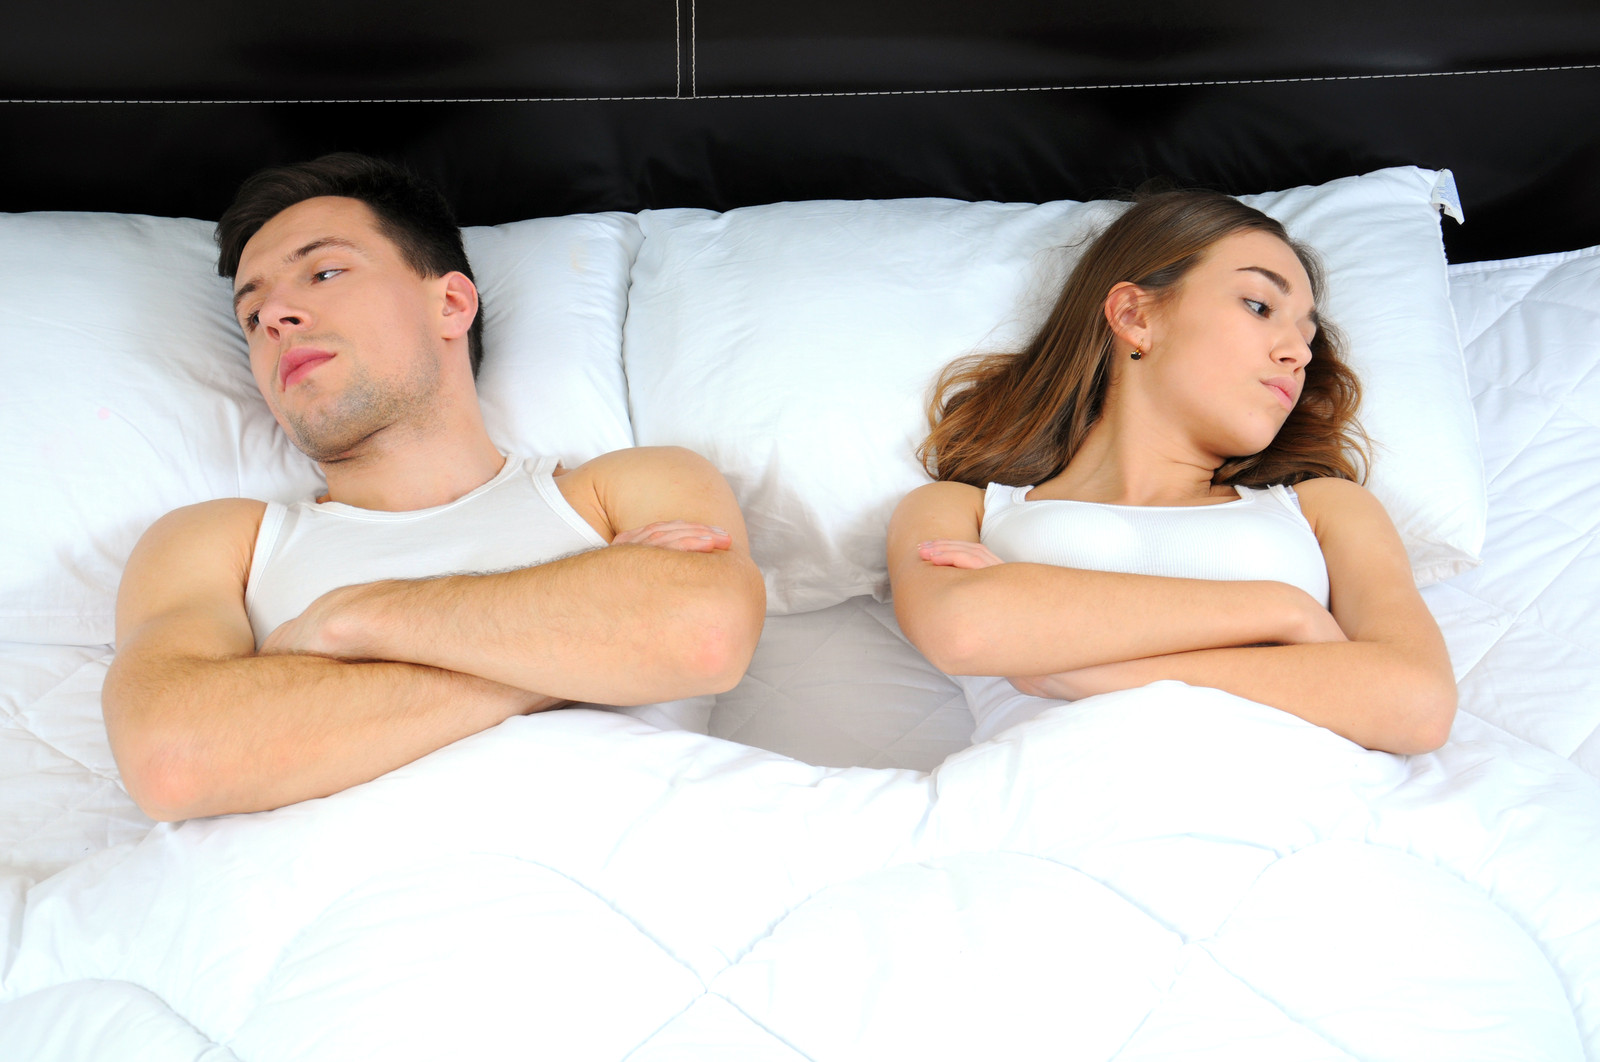 Relationship Insecurity: Can It Negatively Impact Your Immune System?